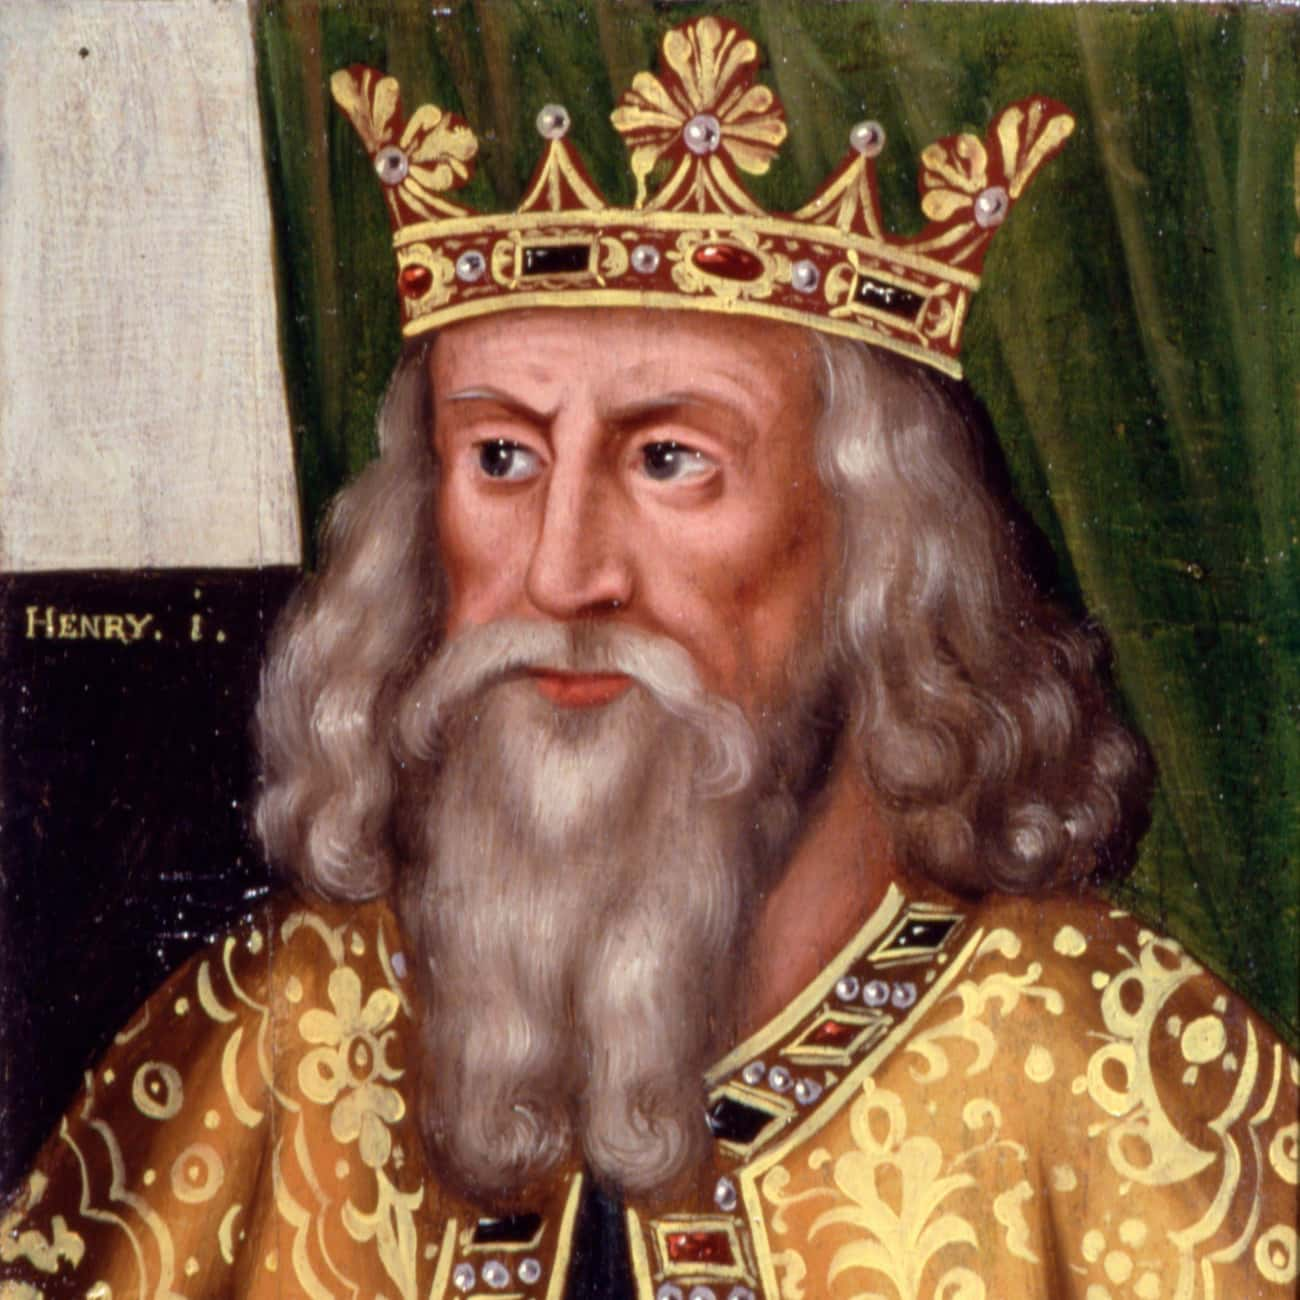 Henry I Died After Going Again is listed (or ranked) 3 on the list The Stupidest, Least Dignified Ways Royals Have Died